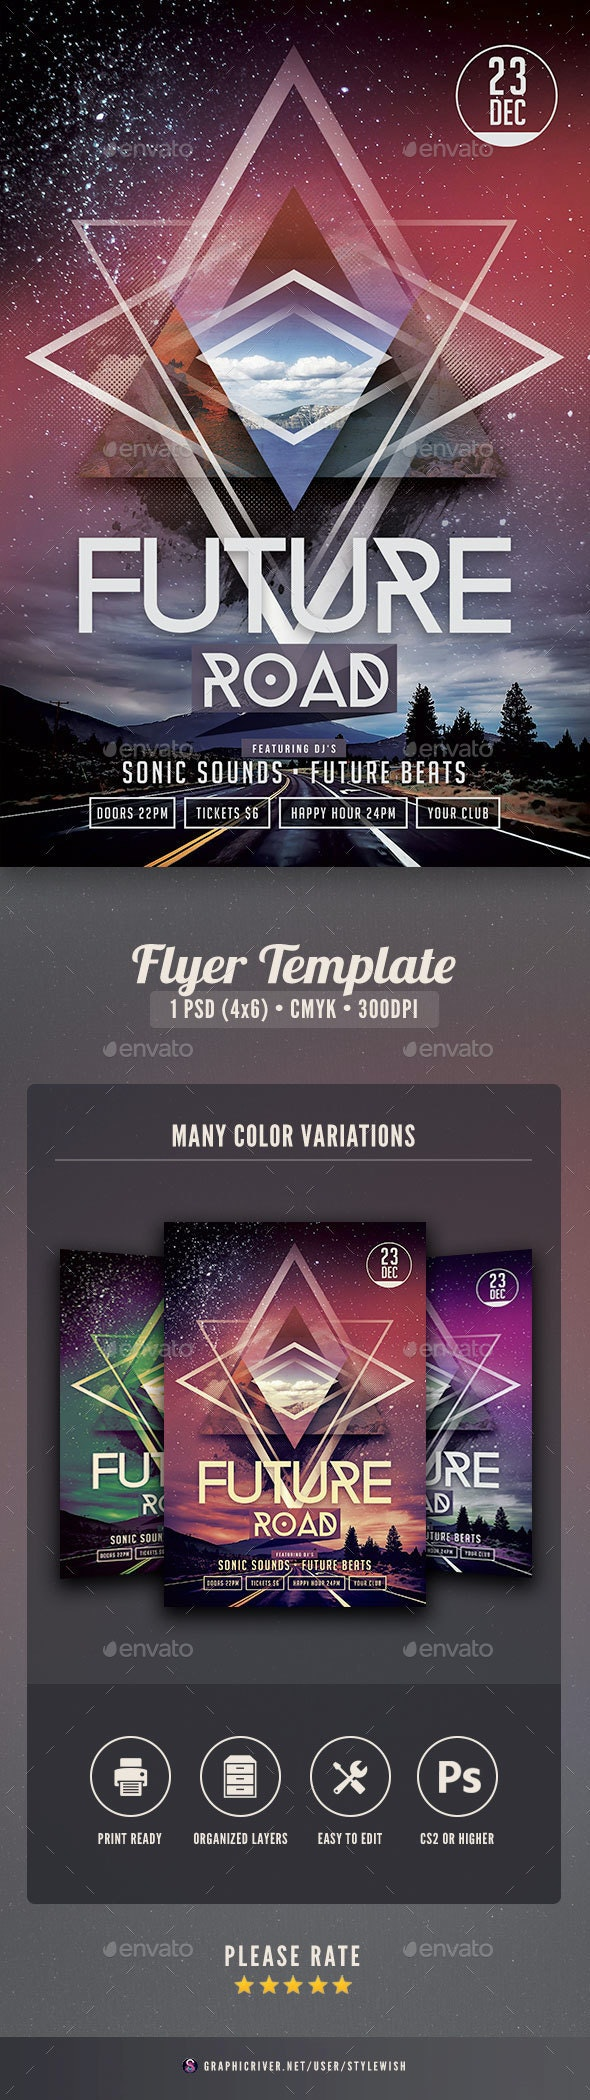 Future Road Flyer - Clubs & Parties Events